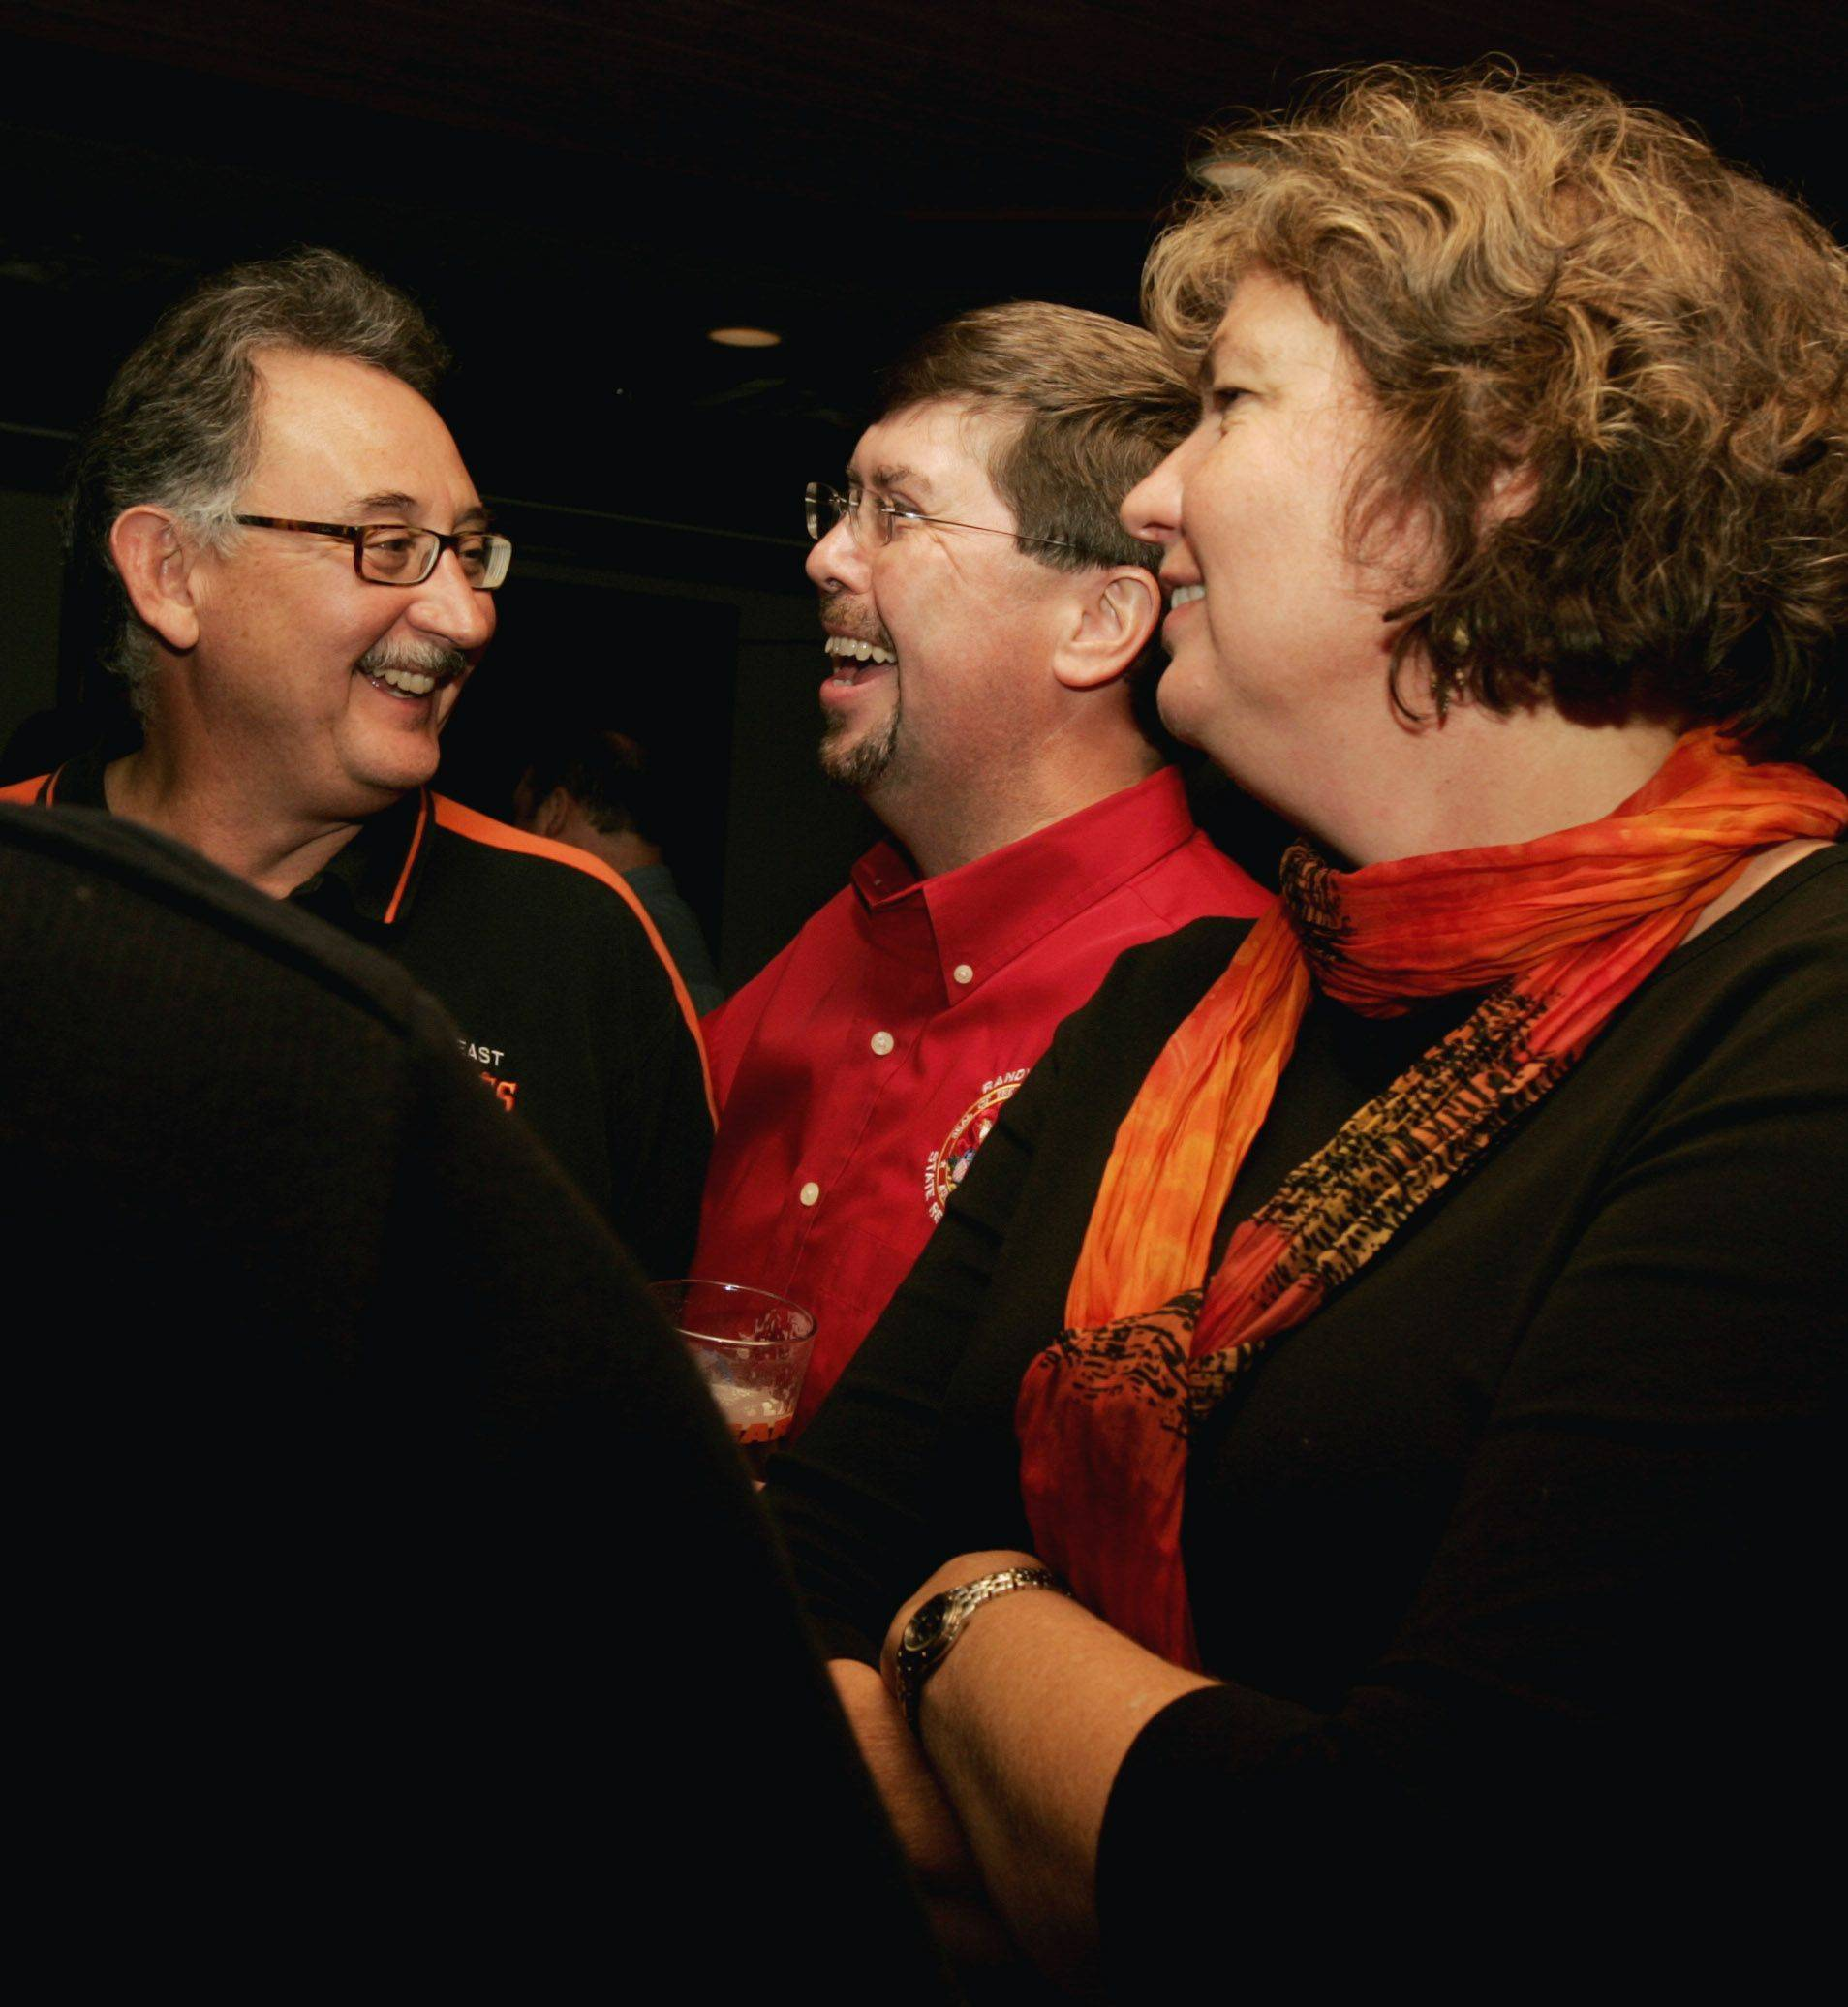 Randy Ramey, center, who was re-elected to the Illinois House in District 55, chats with supporters Edgar and Lita Jimenez of St.Charles on Tuesday night. Ramey received 62 percent of the vote and will return to Springfield for a third term.